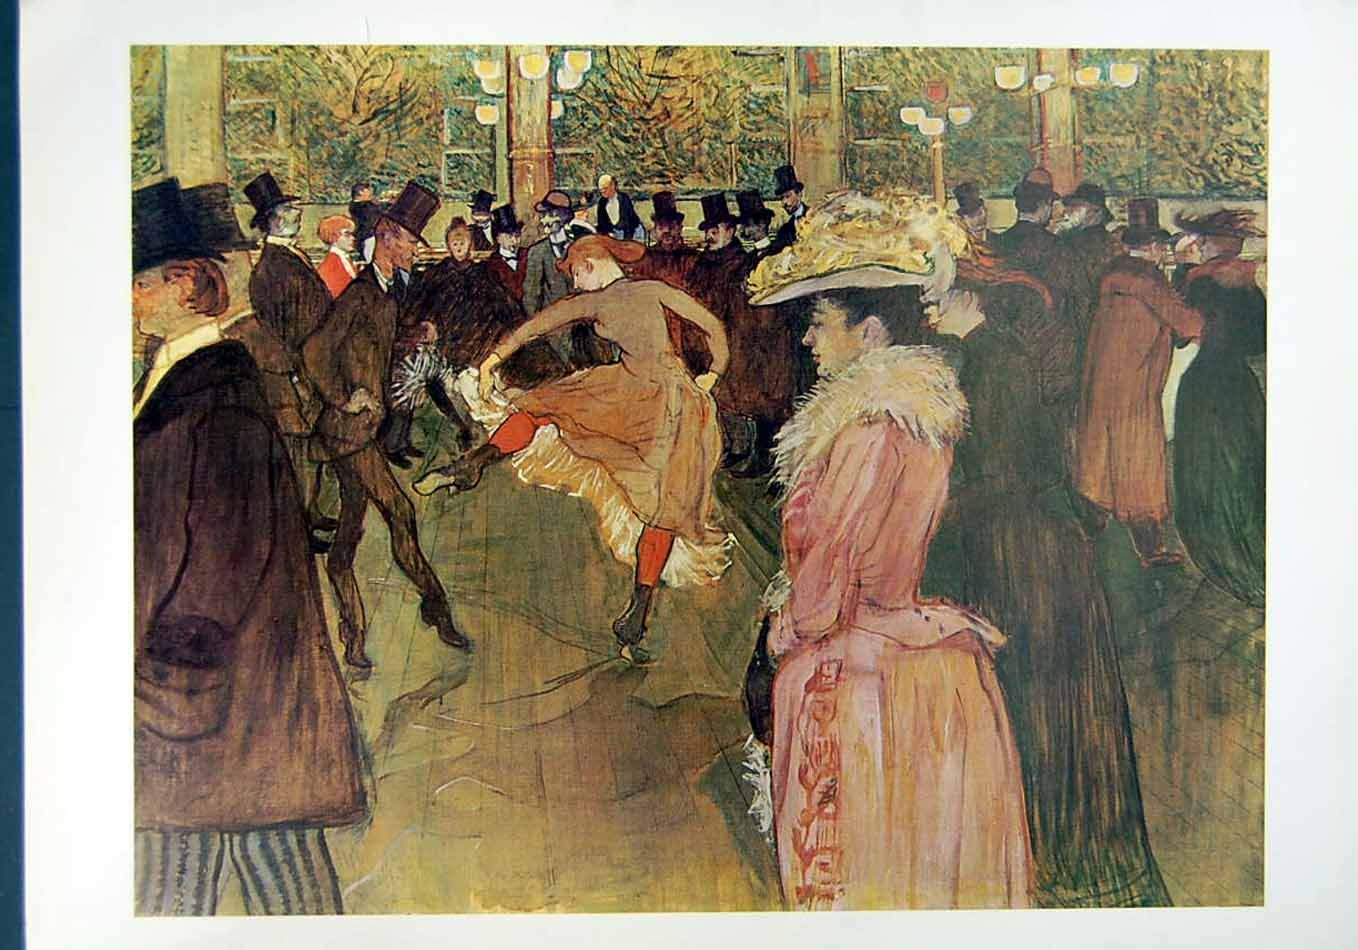 Toulouse-Lautrec Moulin Rouge | Antique Print of 1993 Toulouse Lautrec Art Dance Moulin Rouge